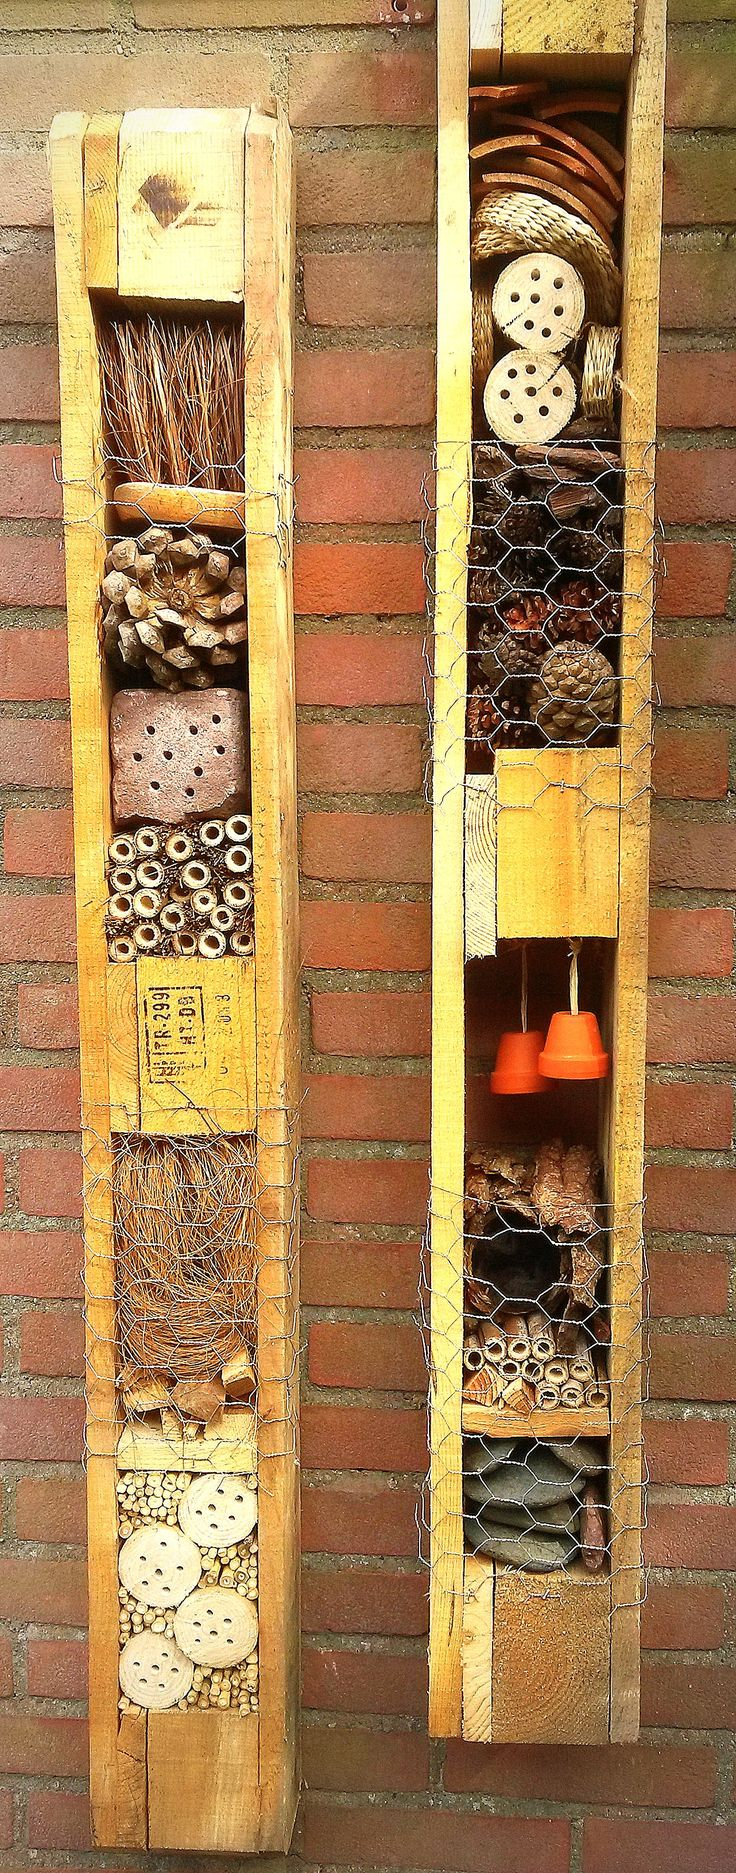 insect hotel from palet for the wildlife area